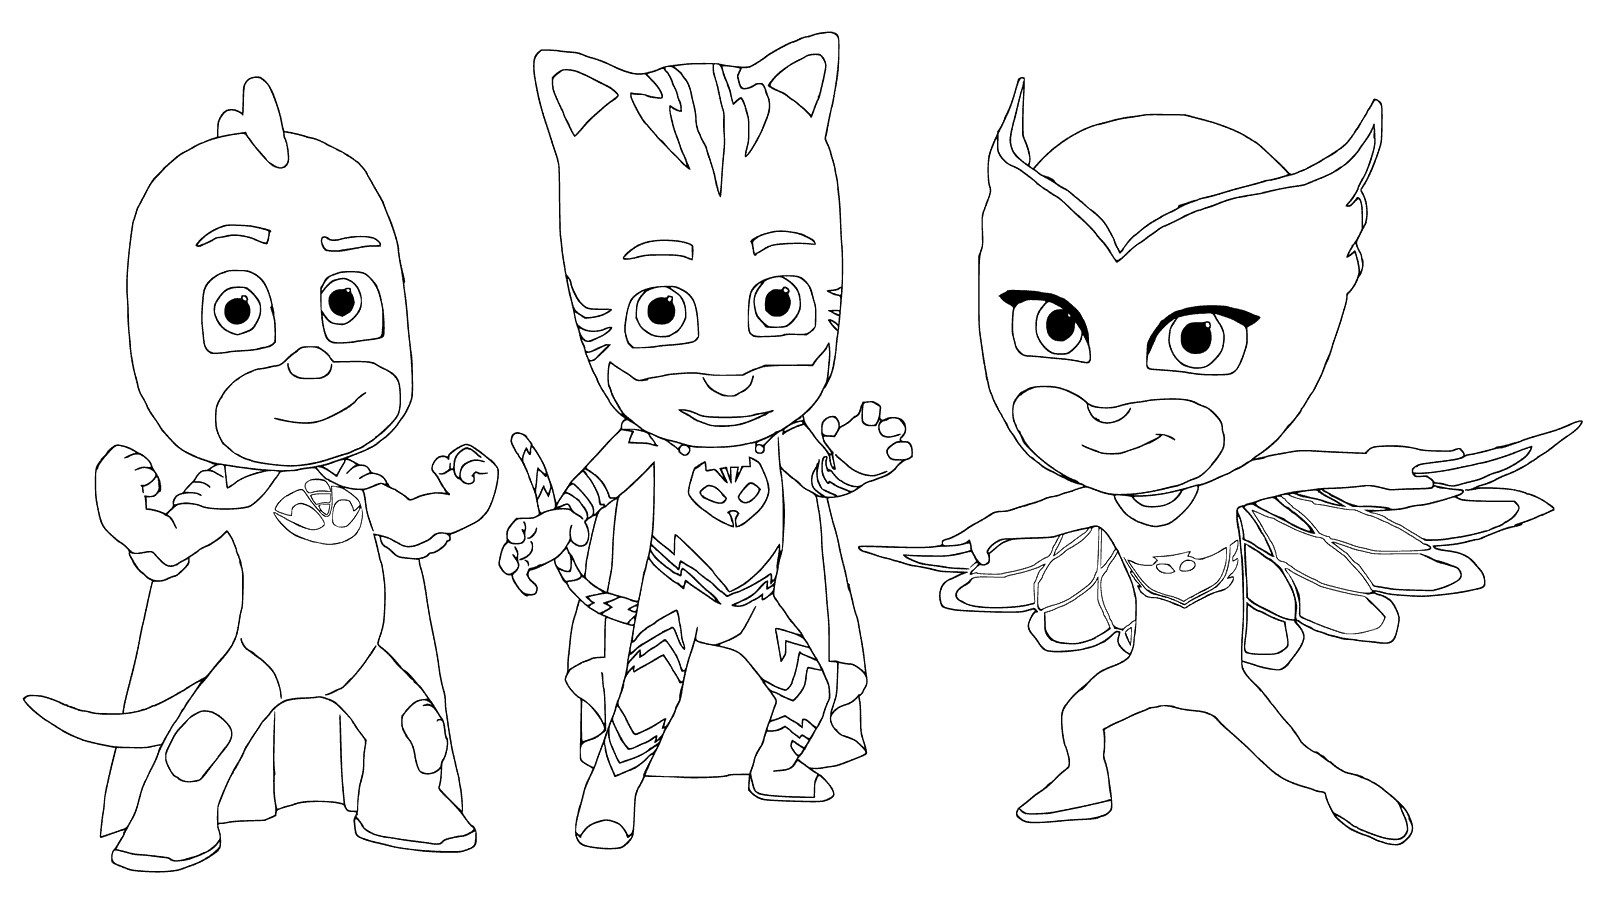 Best ideas about Pj Masks Coloring Sheet . Save or Pin Top 10 PJ Masks Coloring Pages 2017 Now.